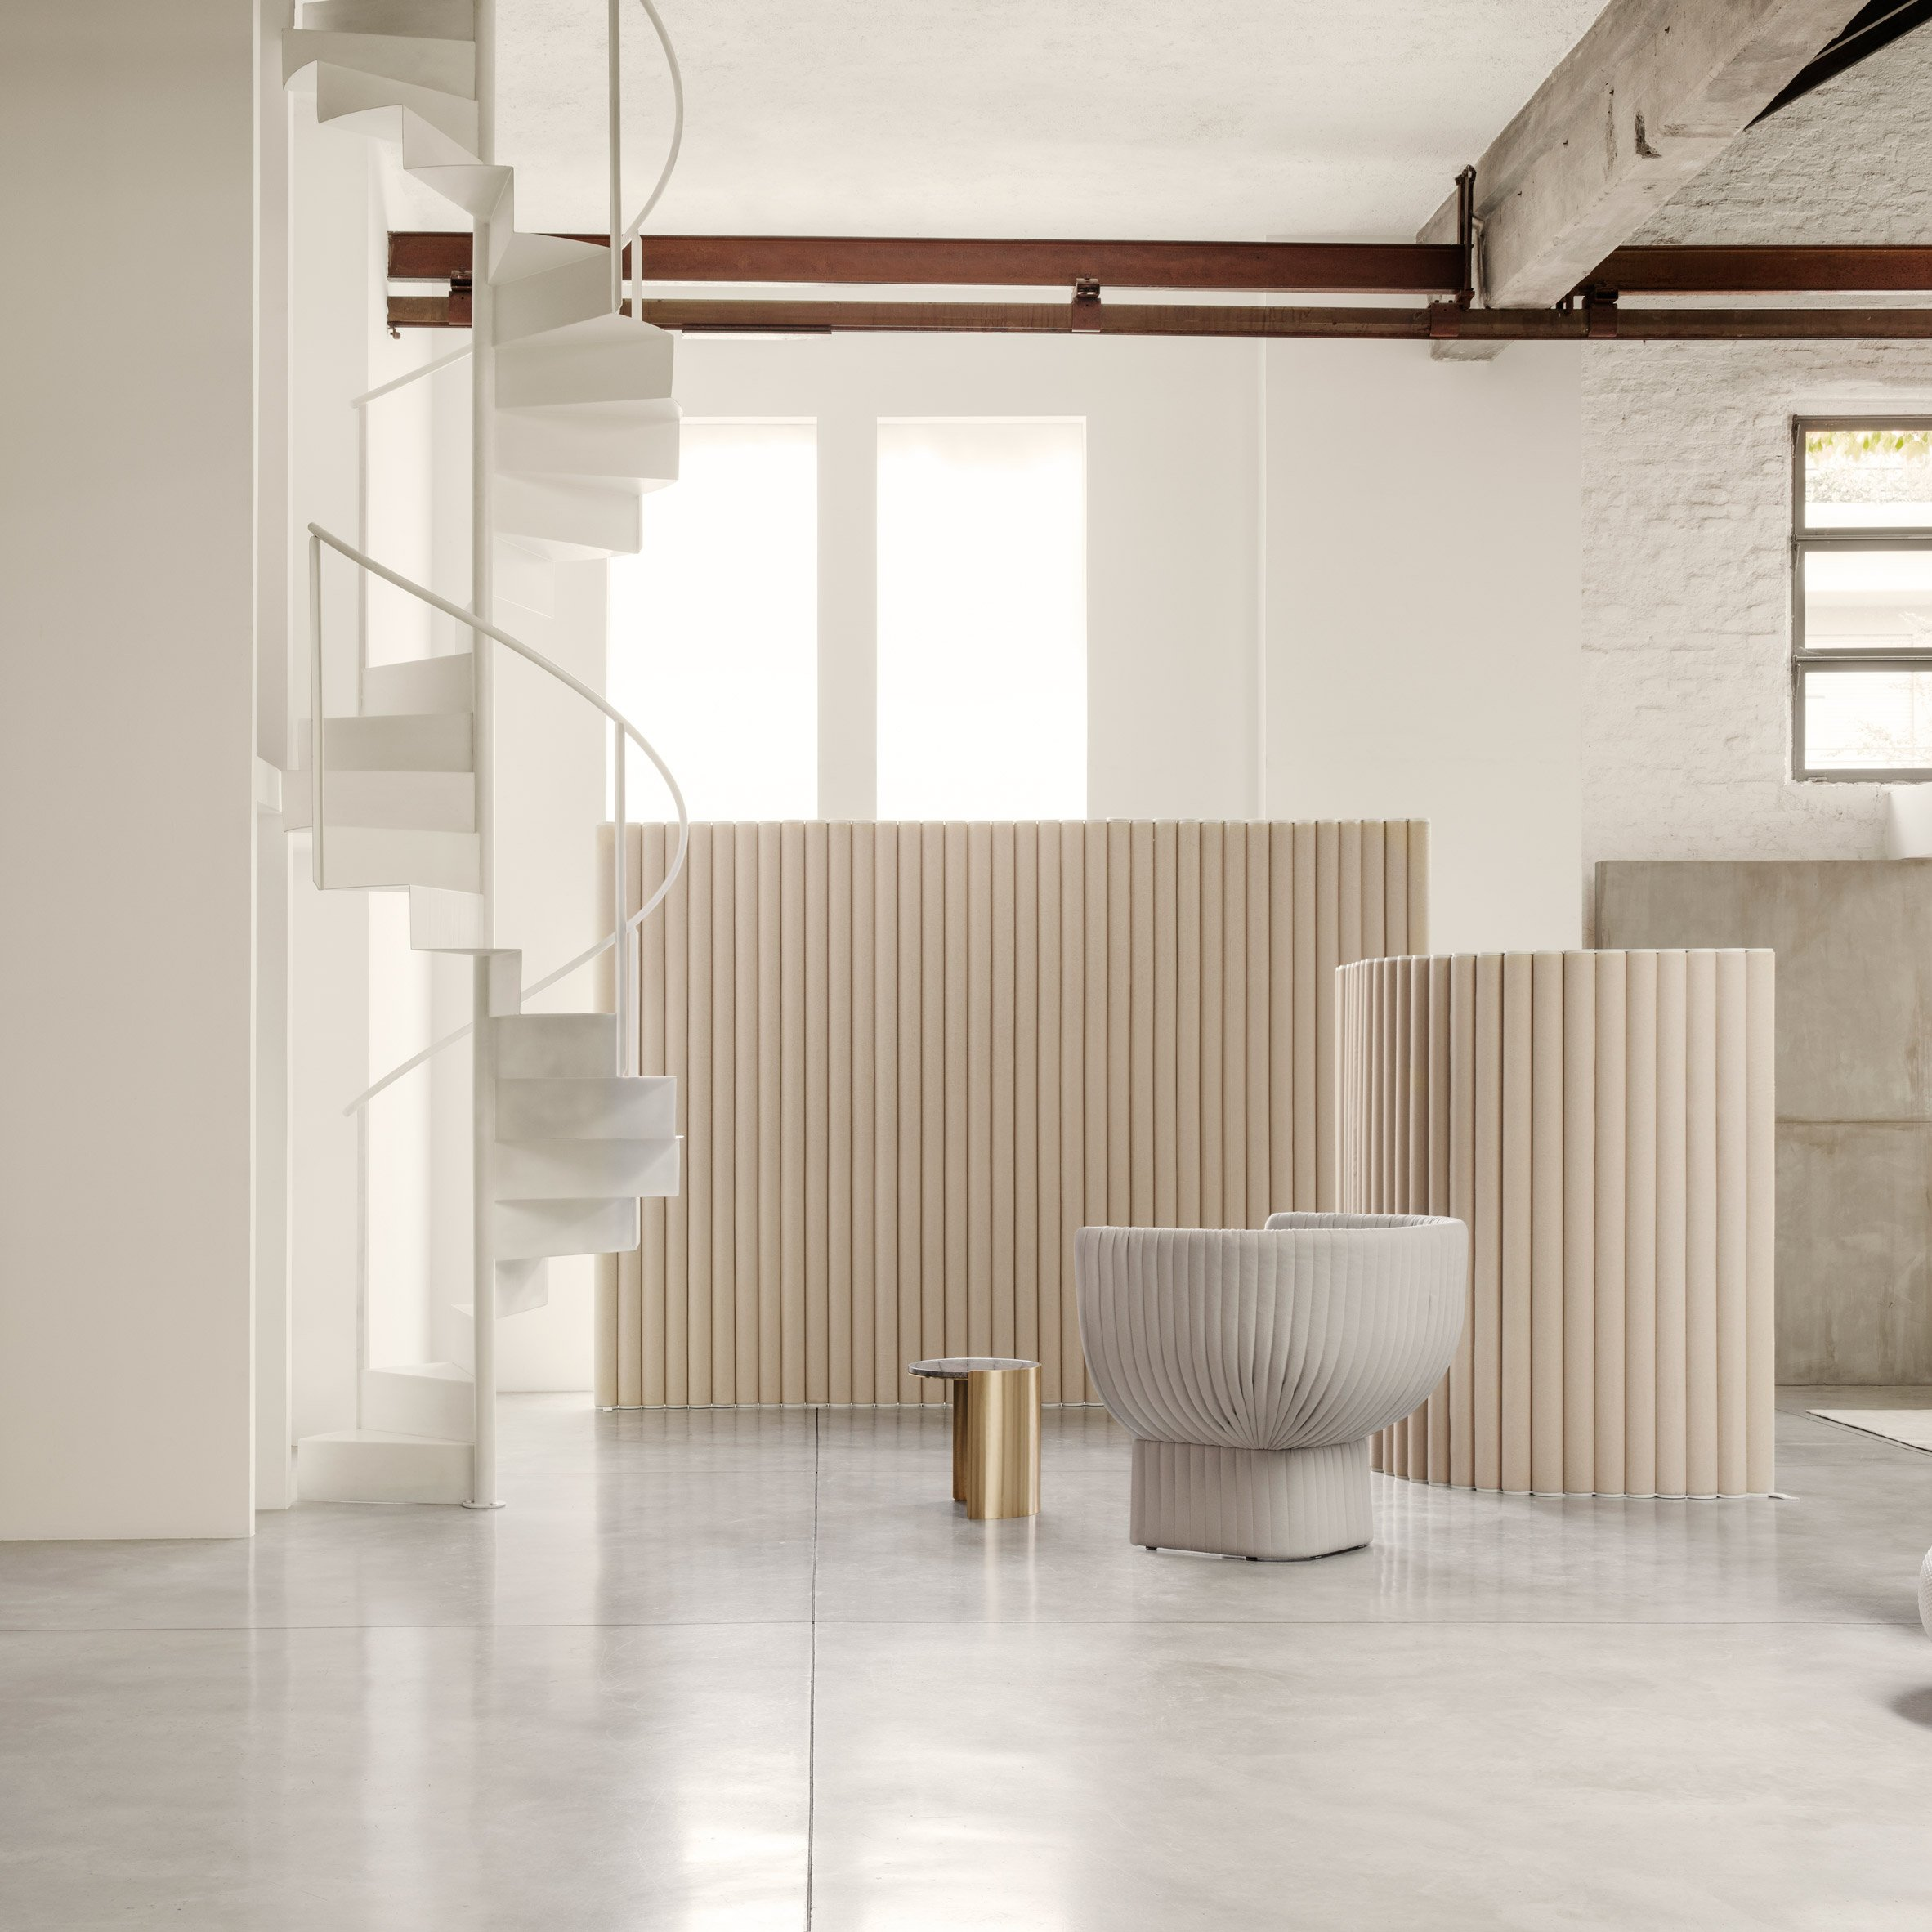 Monforte room divider by Raffaella Mangiarotti for IOC